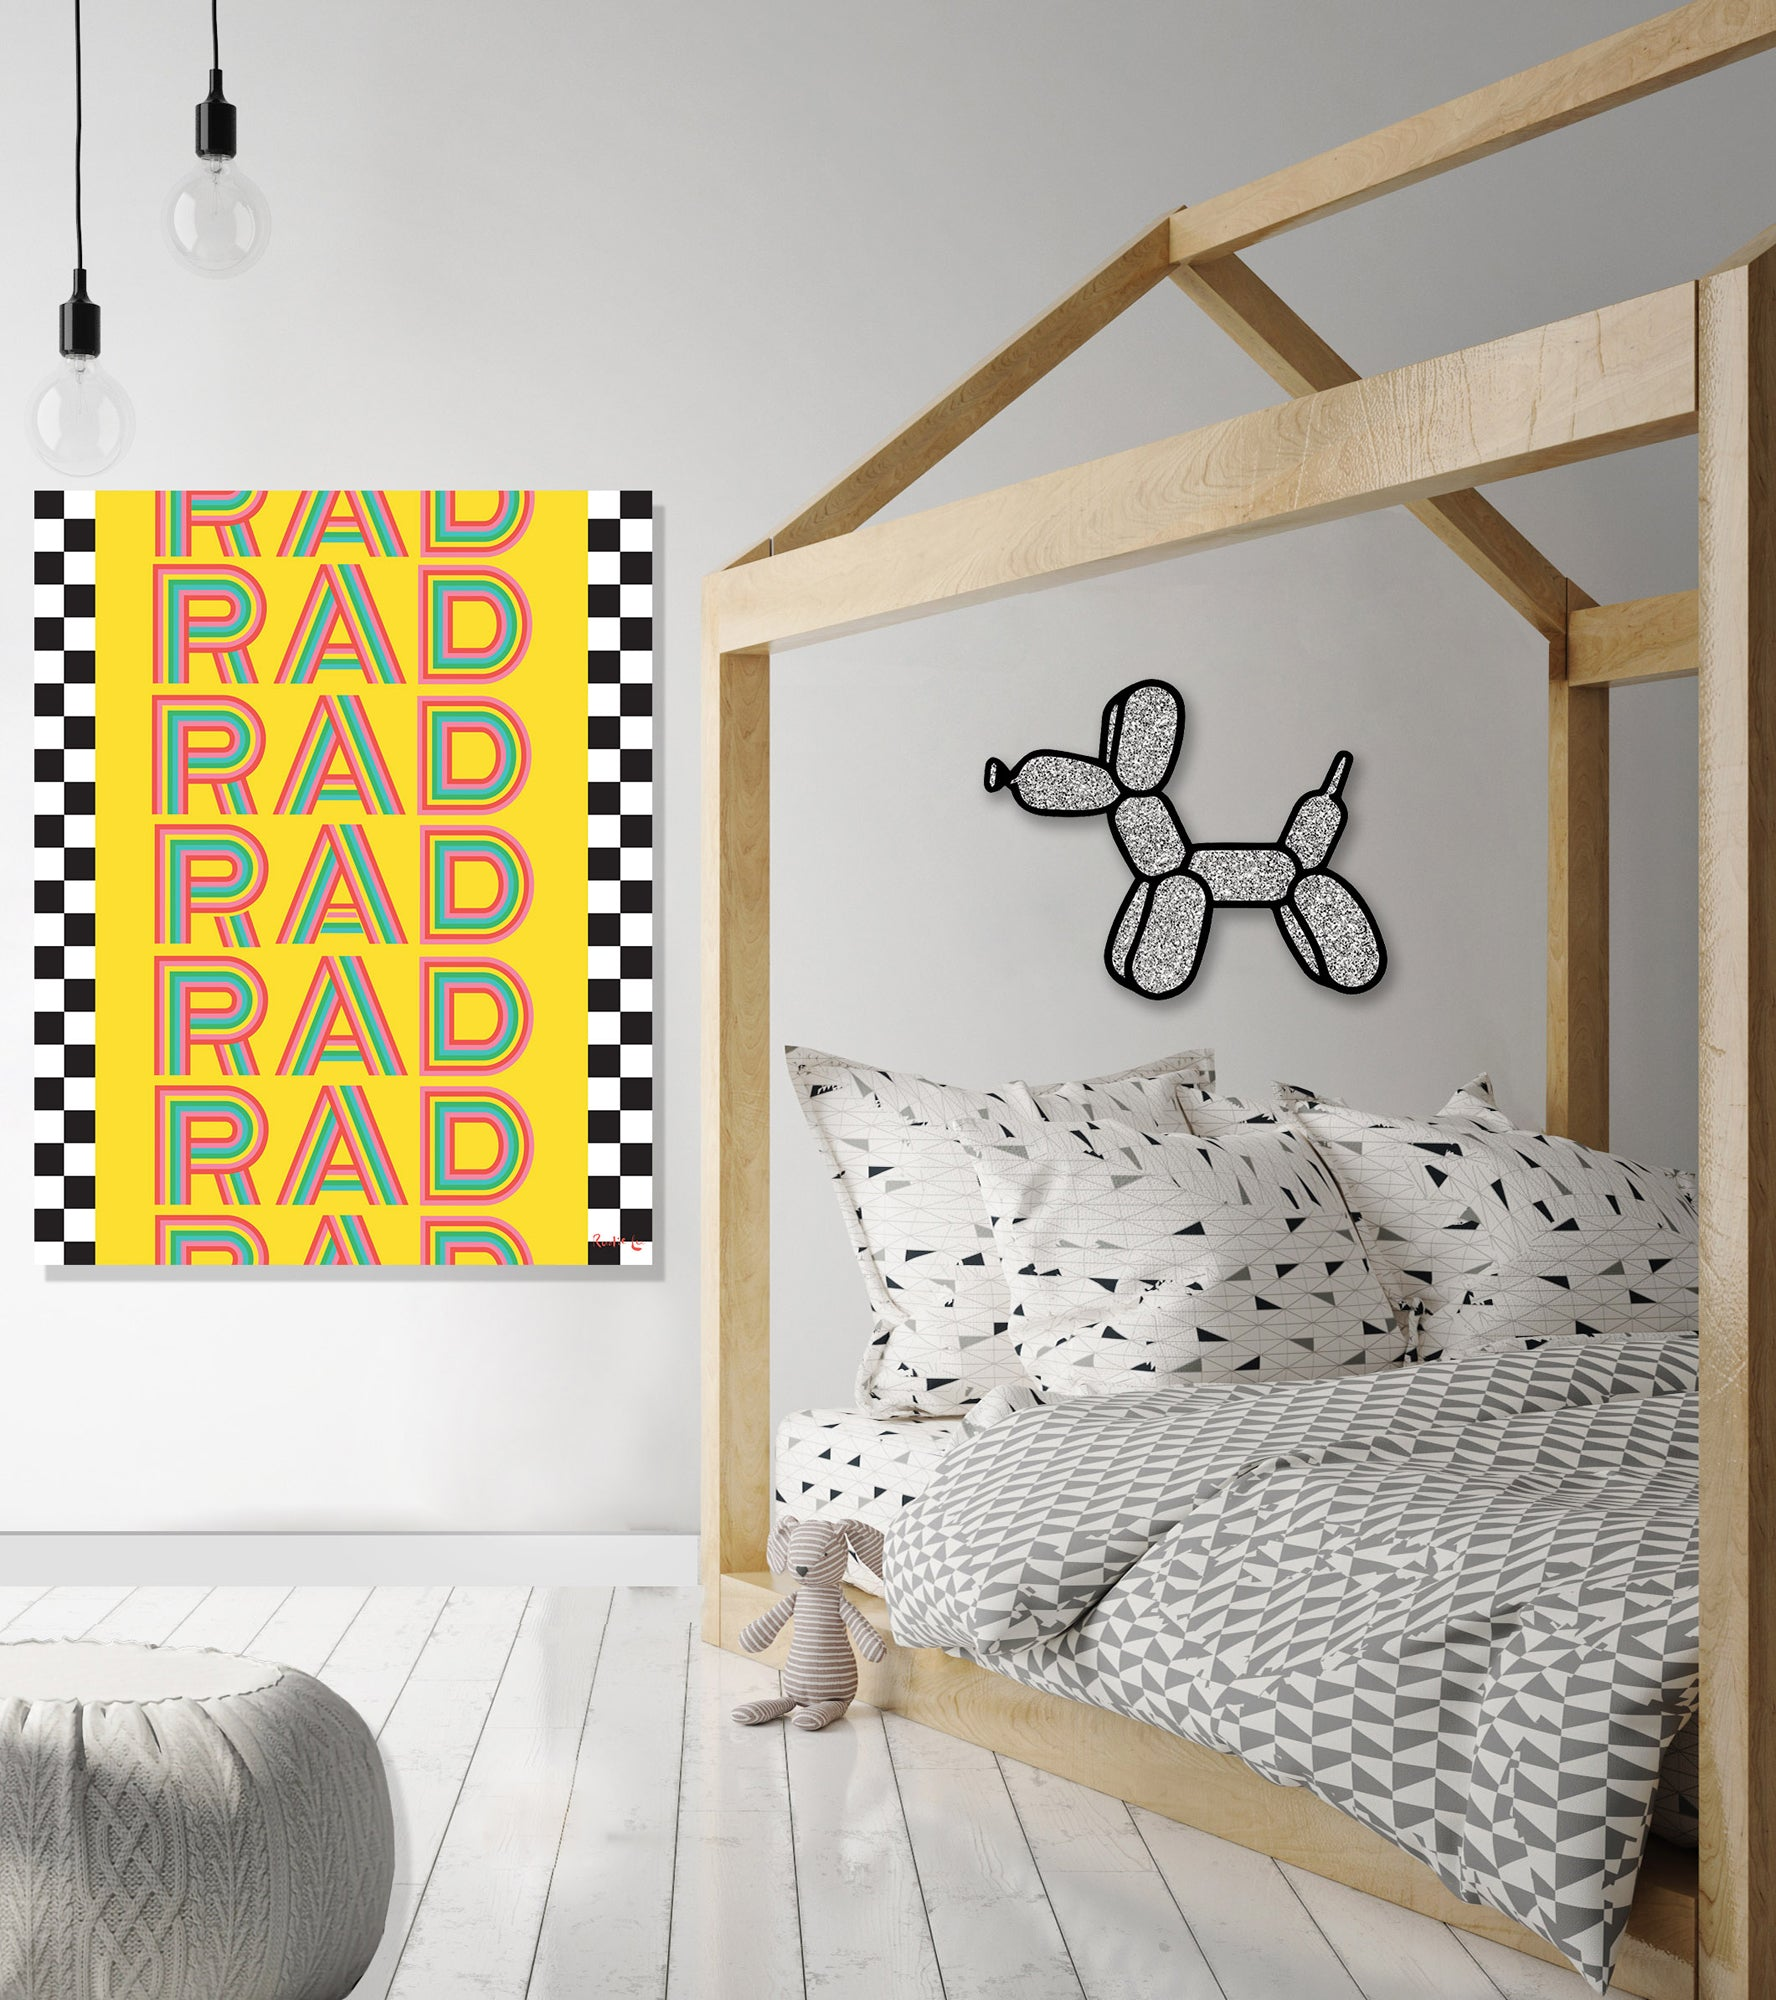 Rad Rad Rad (Zing) by Rudie Lee